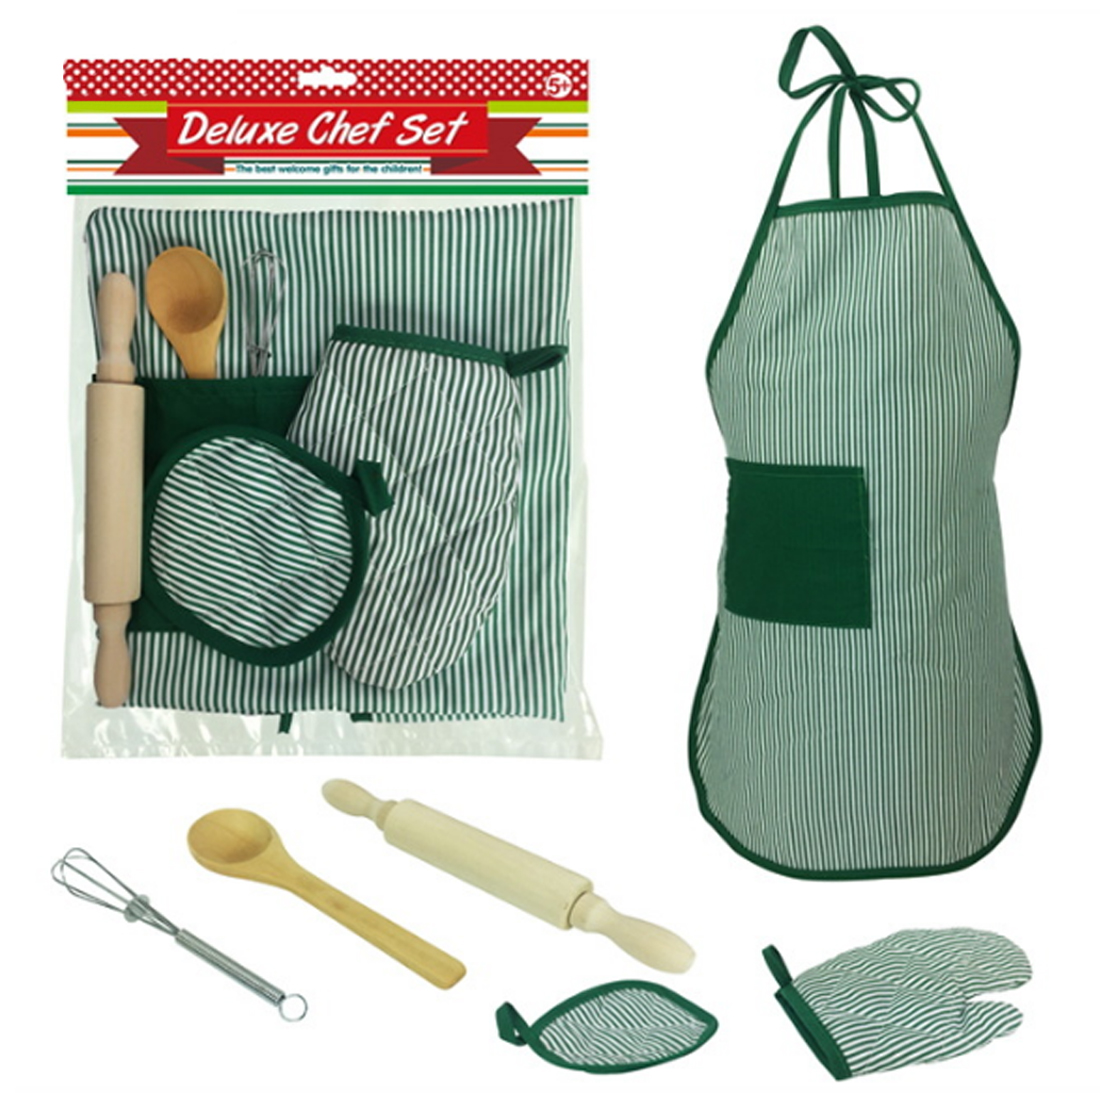 2018 Children Chef Set DIY Cooking Baking Suit Toys Set New Pretend Play Apron Gloves Rolling Pin Eggbeater Cooker Gift For Kids